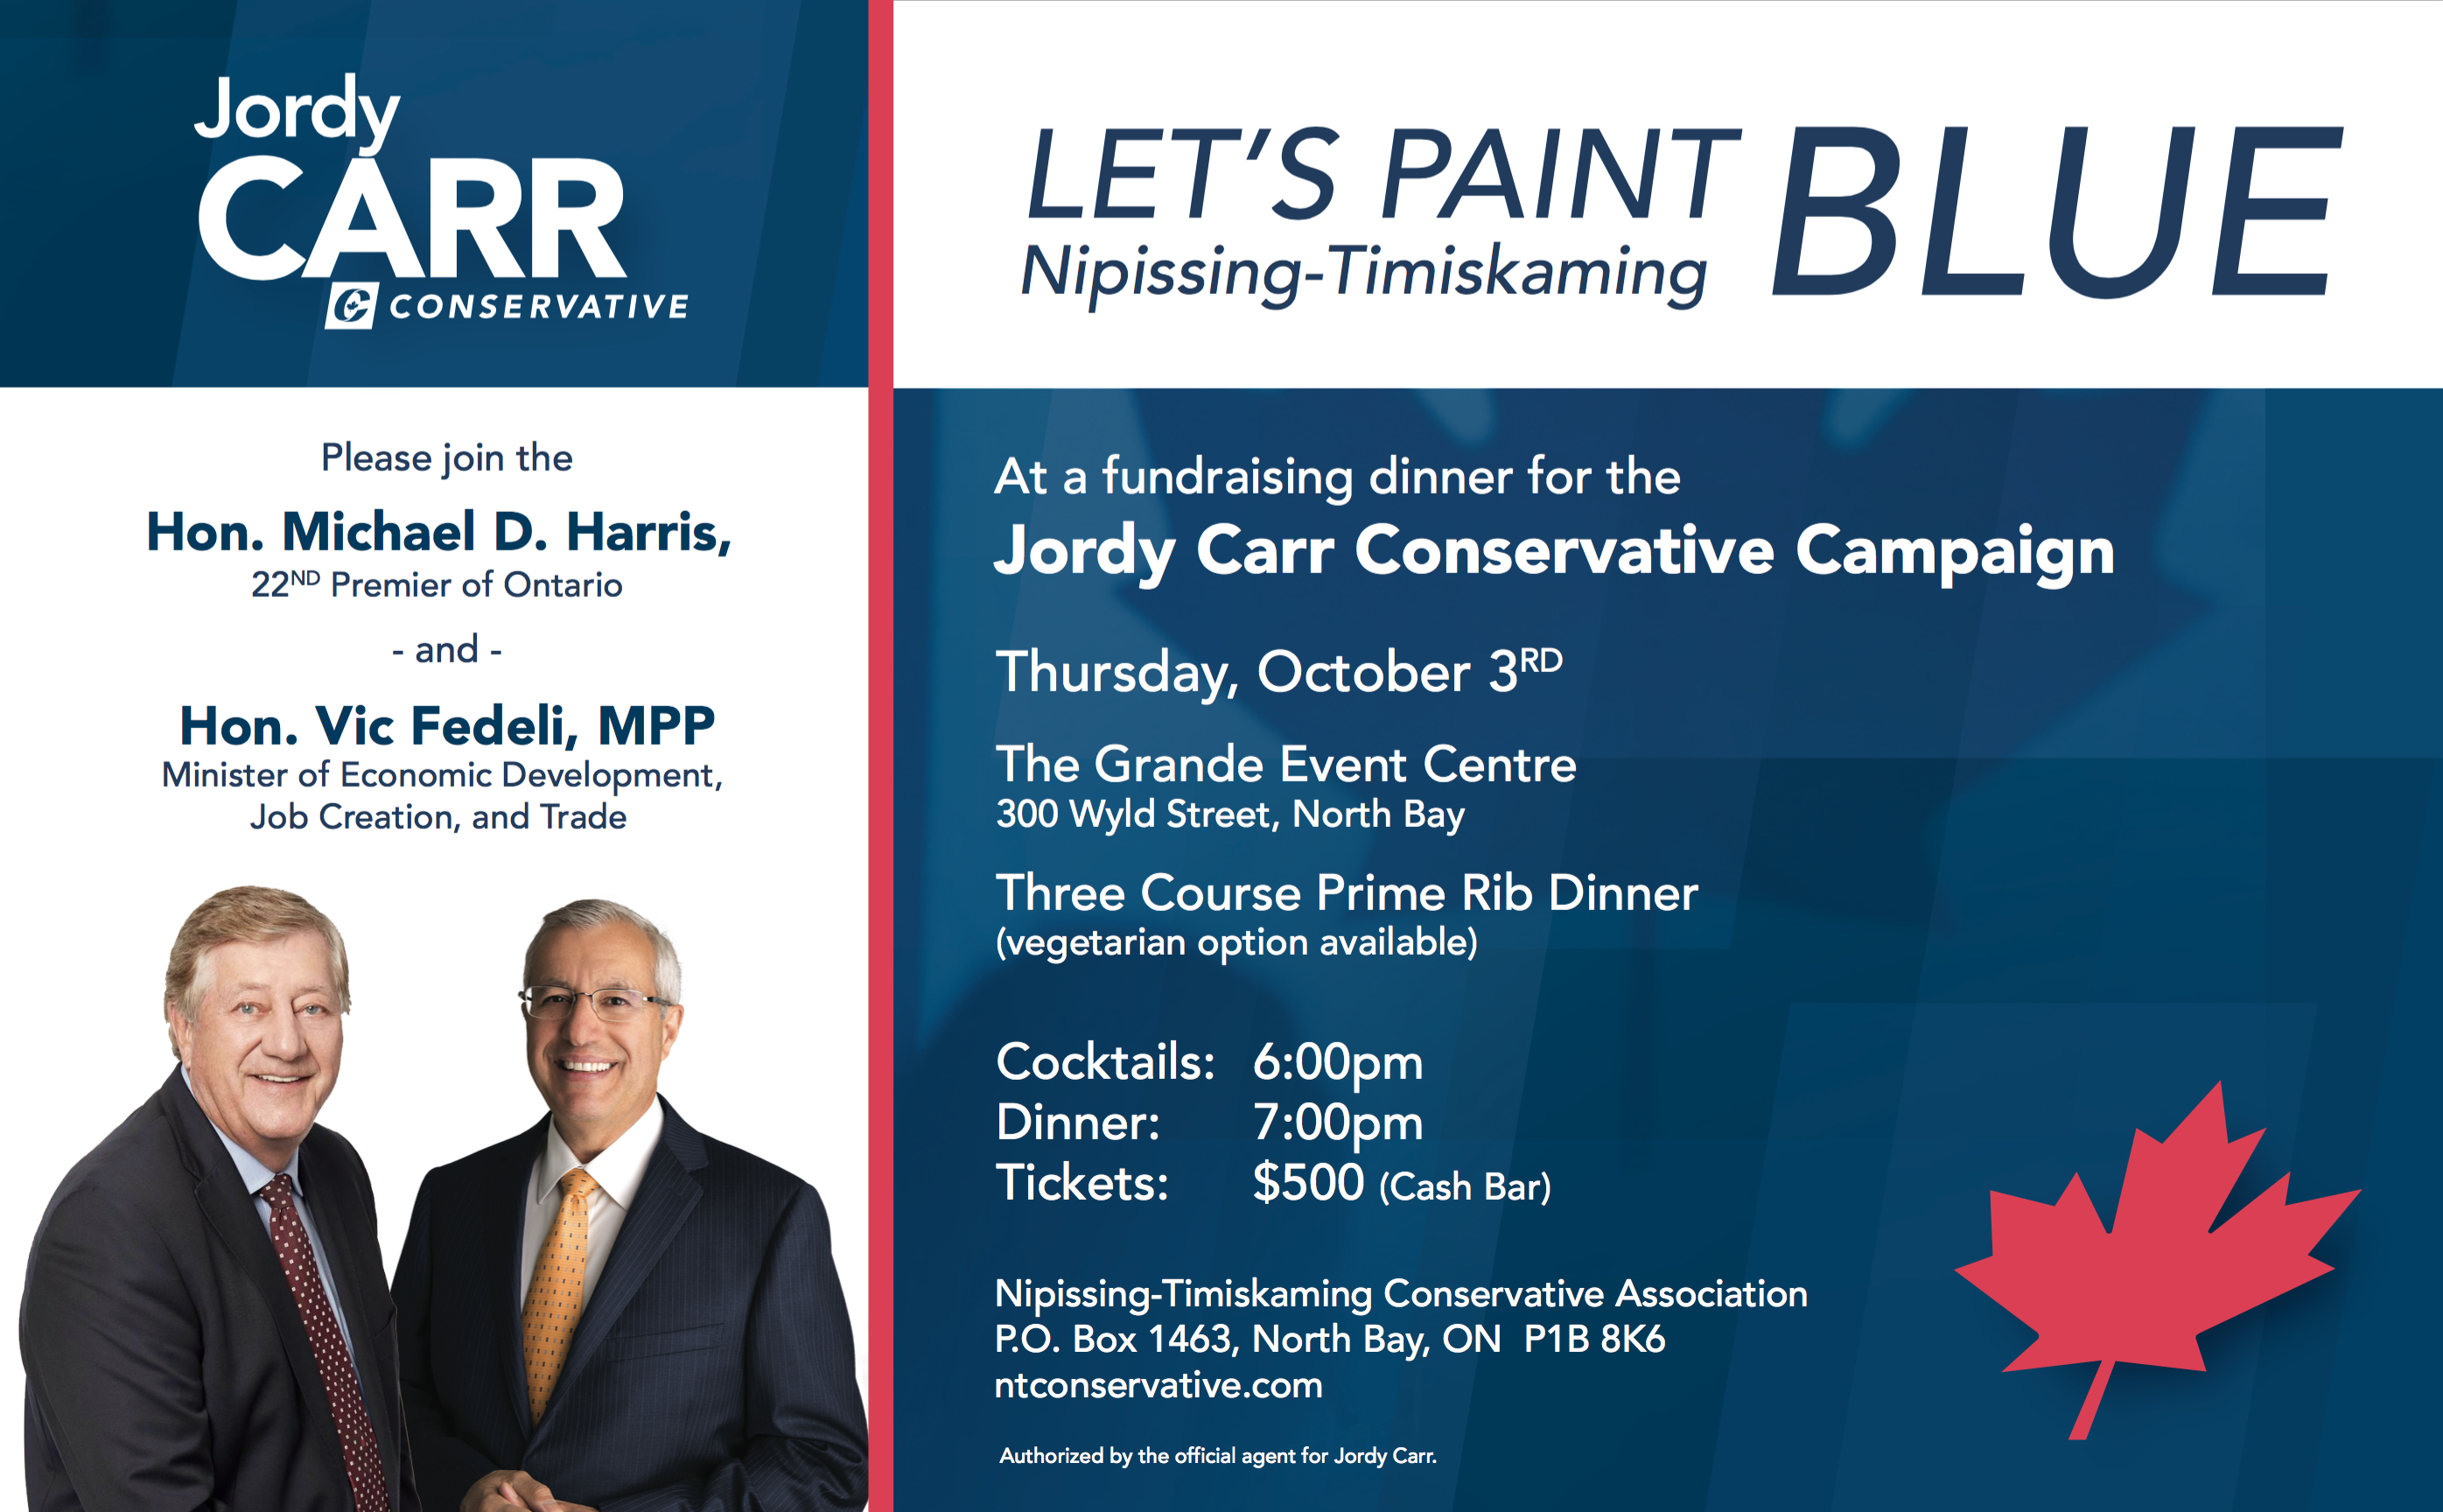 Paint Nipissing-Timiskaming Blue Fundraiser Emailer